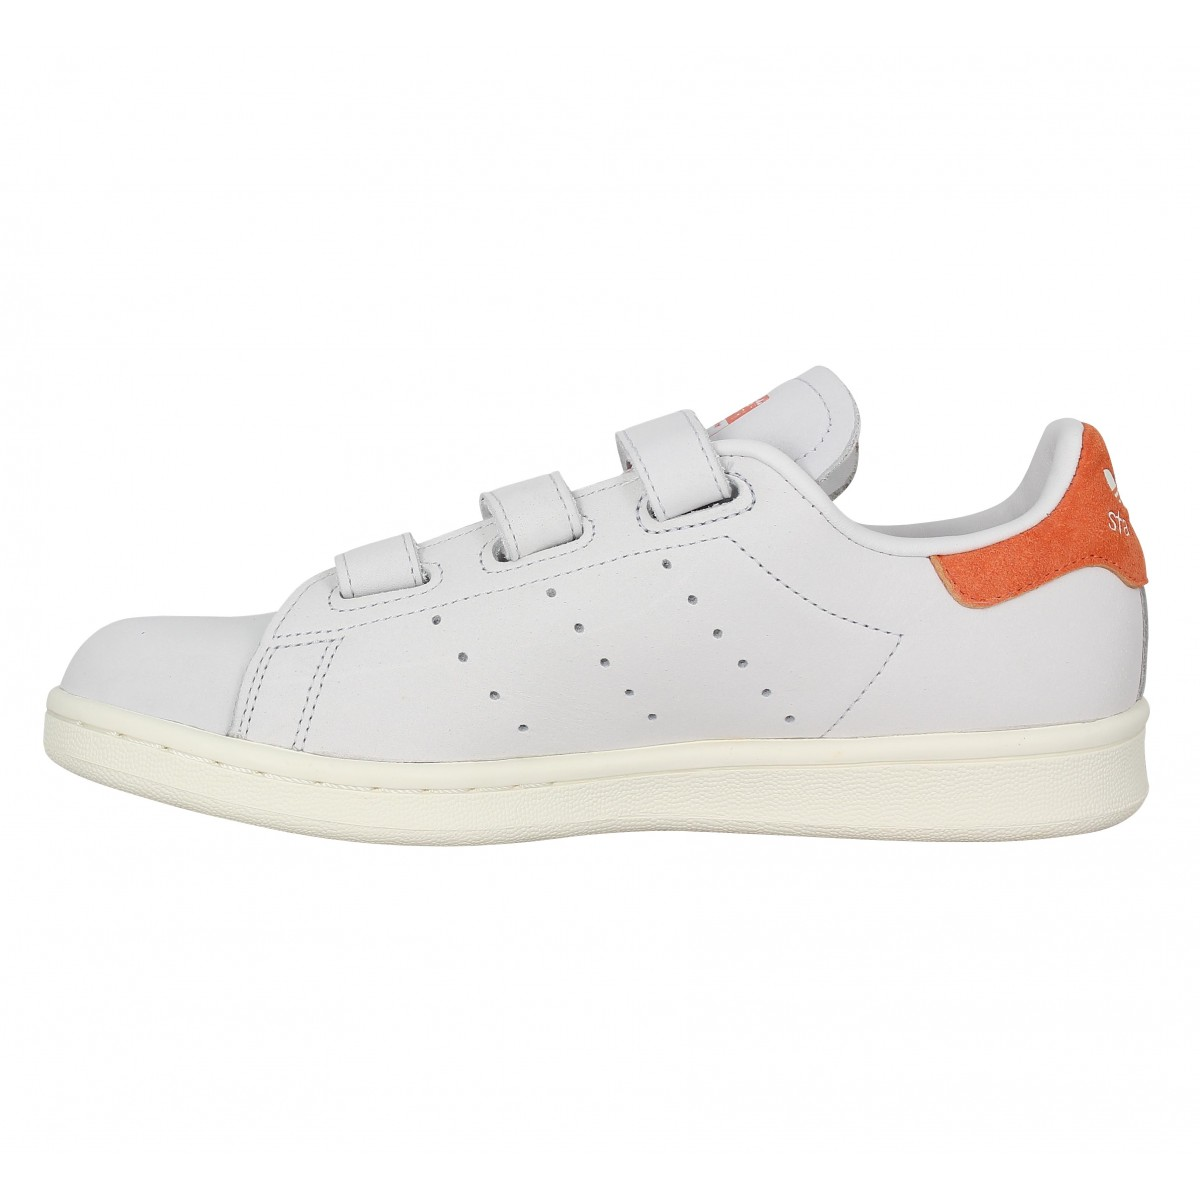 grand choix de 6e9f1 714a7 czech adidas stan smith blanc velcro 680e6 7b179